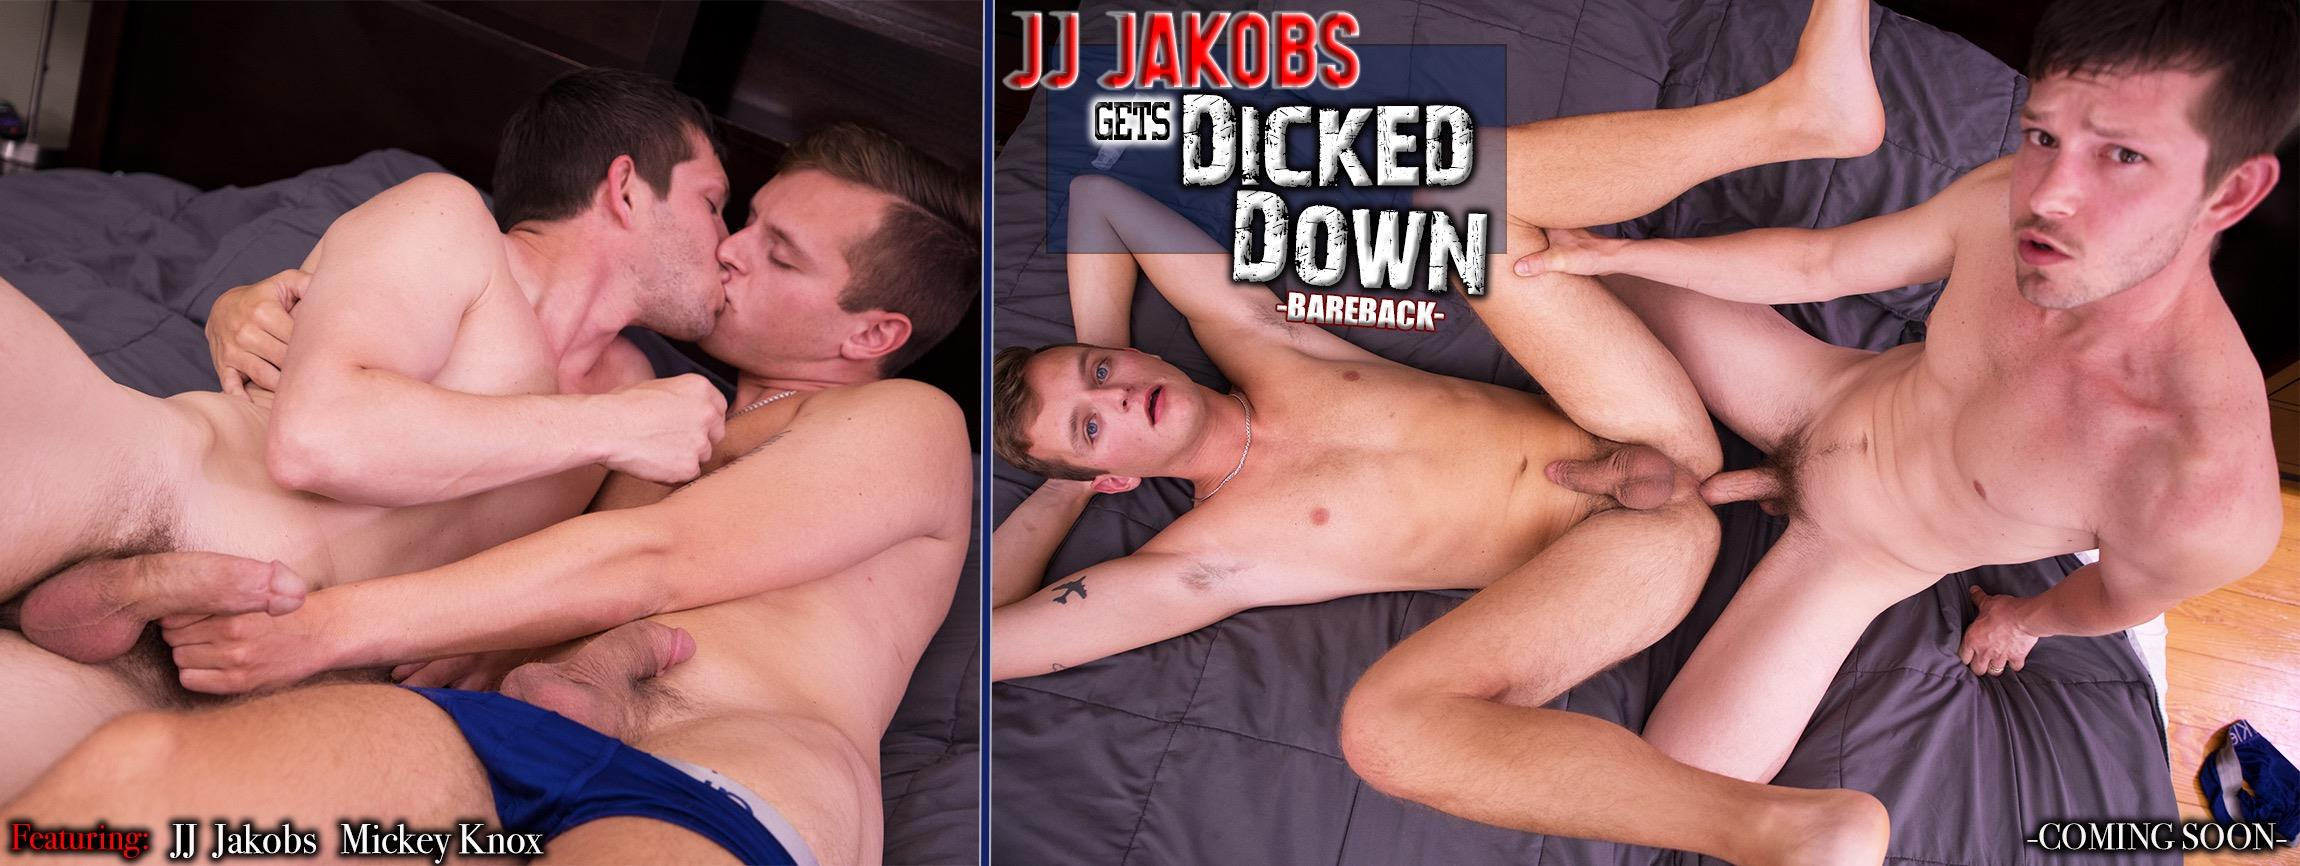 JJ Jakobs gets Dicked Down by Mickey Knox